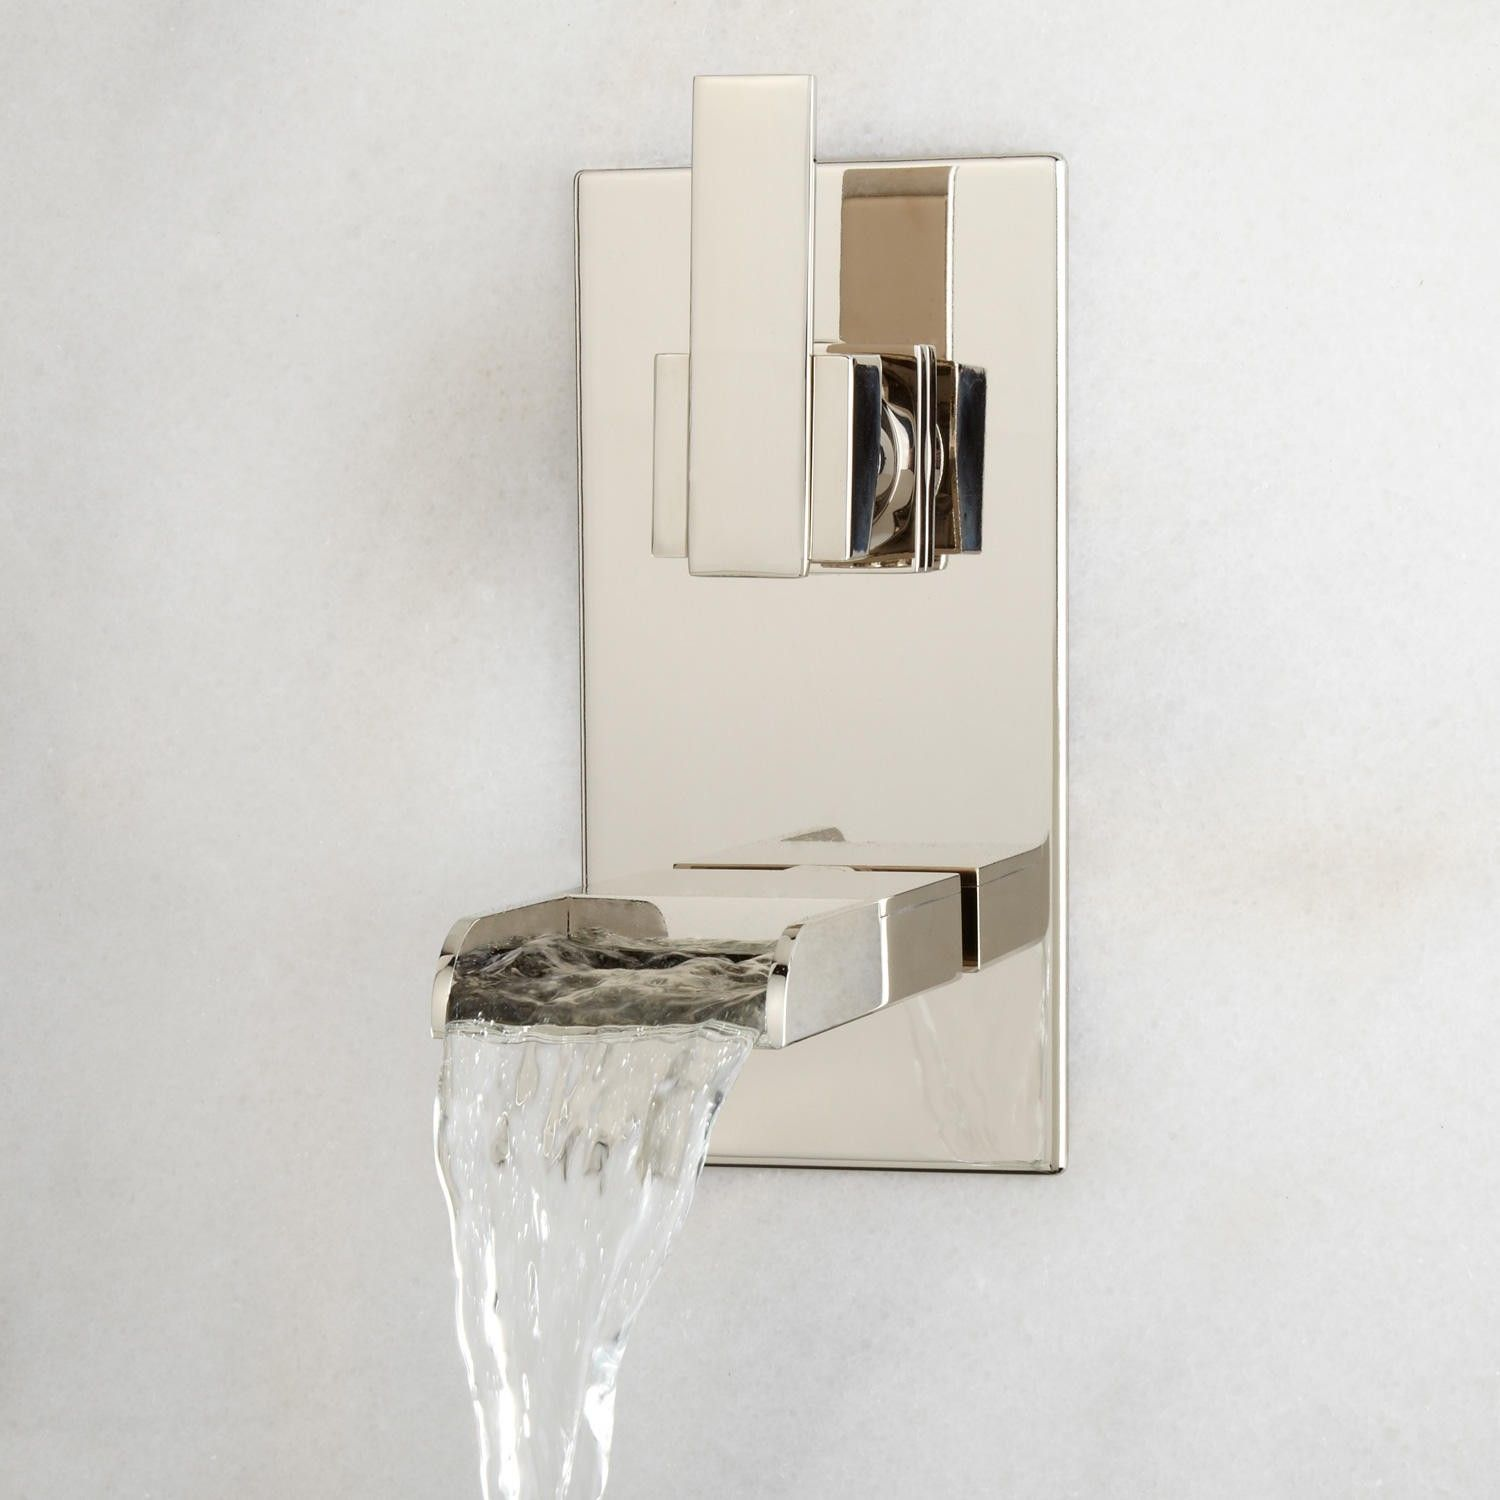 Willis WallMount Bathroom Waterfall Faucet Waterfall Faucet - Waterfall faucet for bathroom sink for bathroom decor ideas